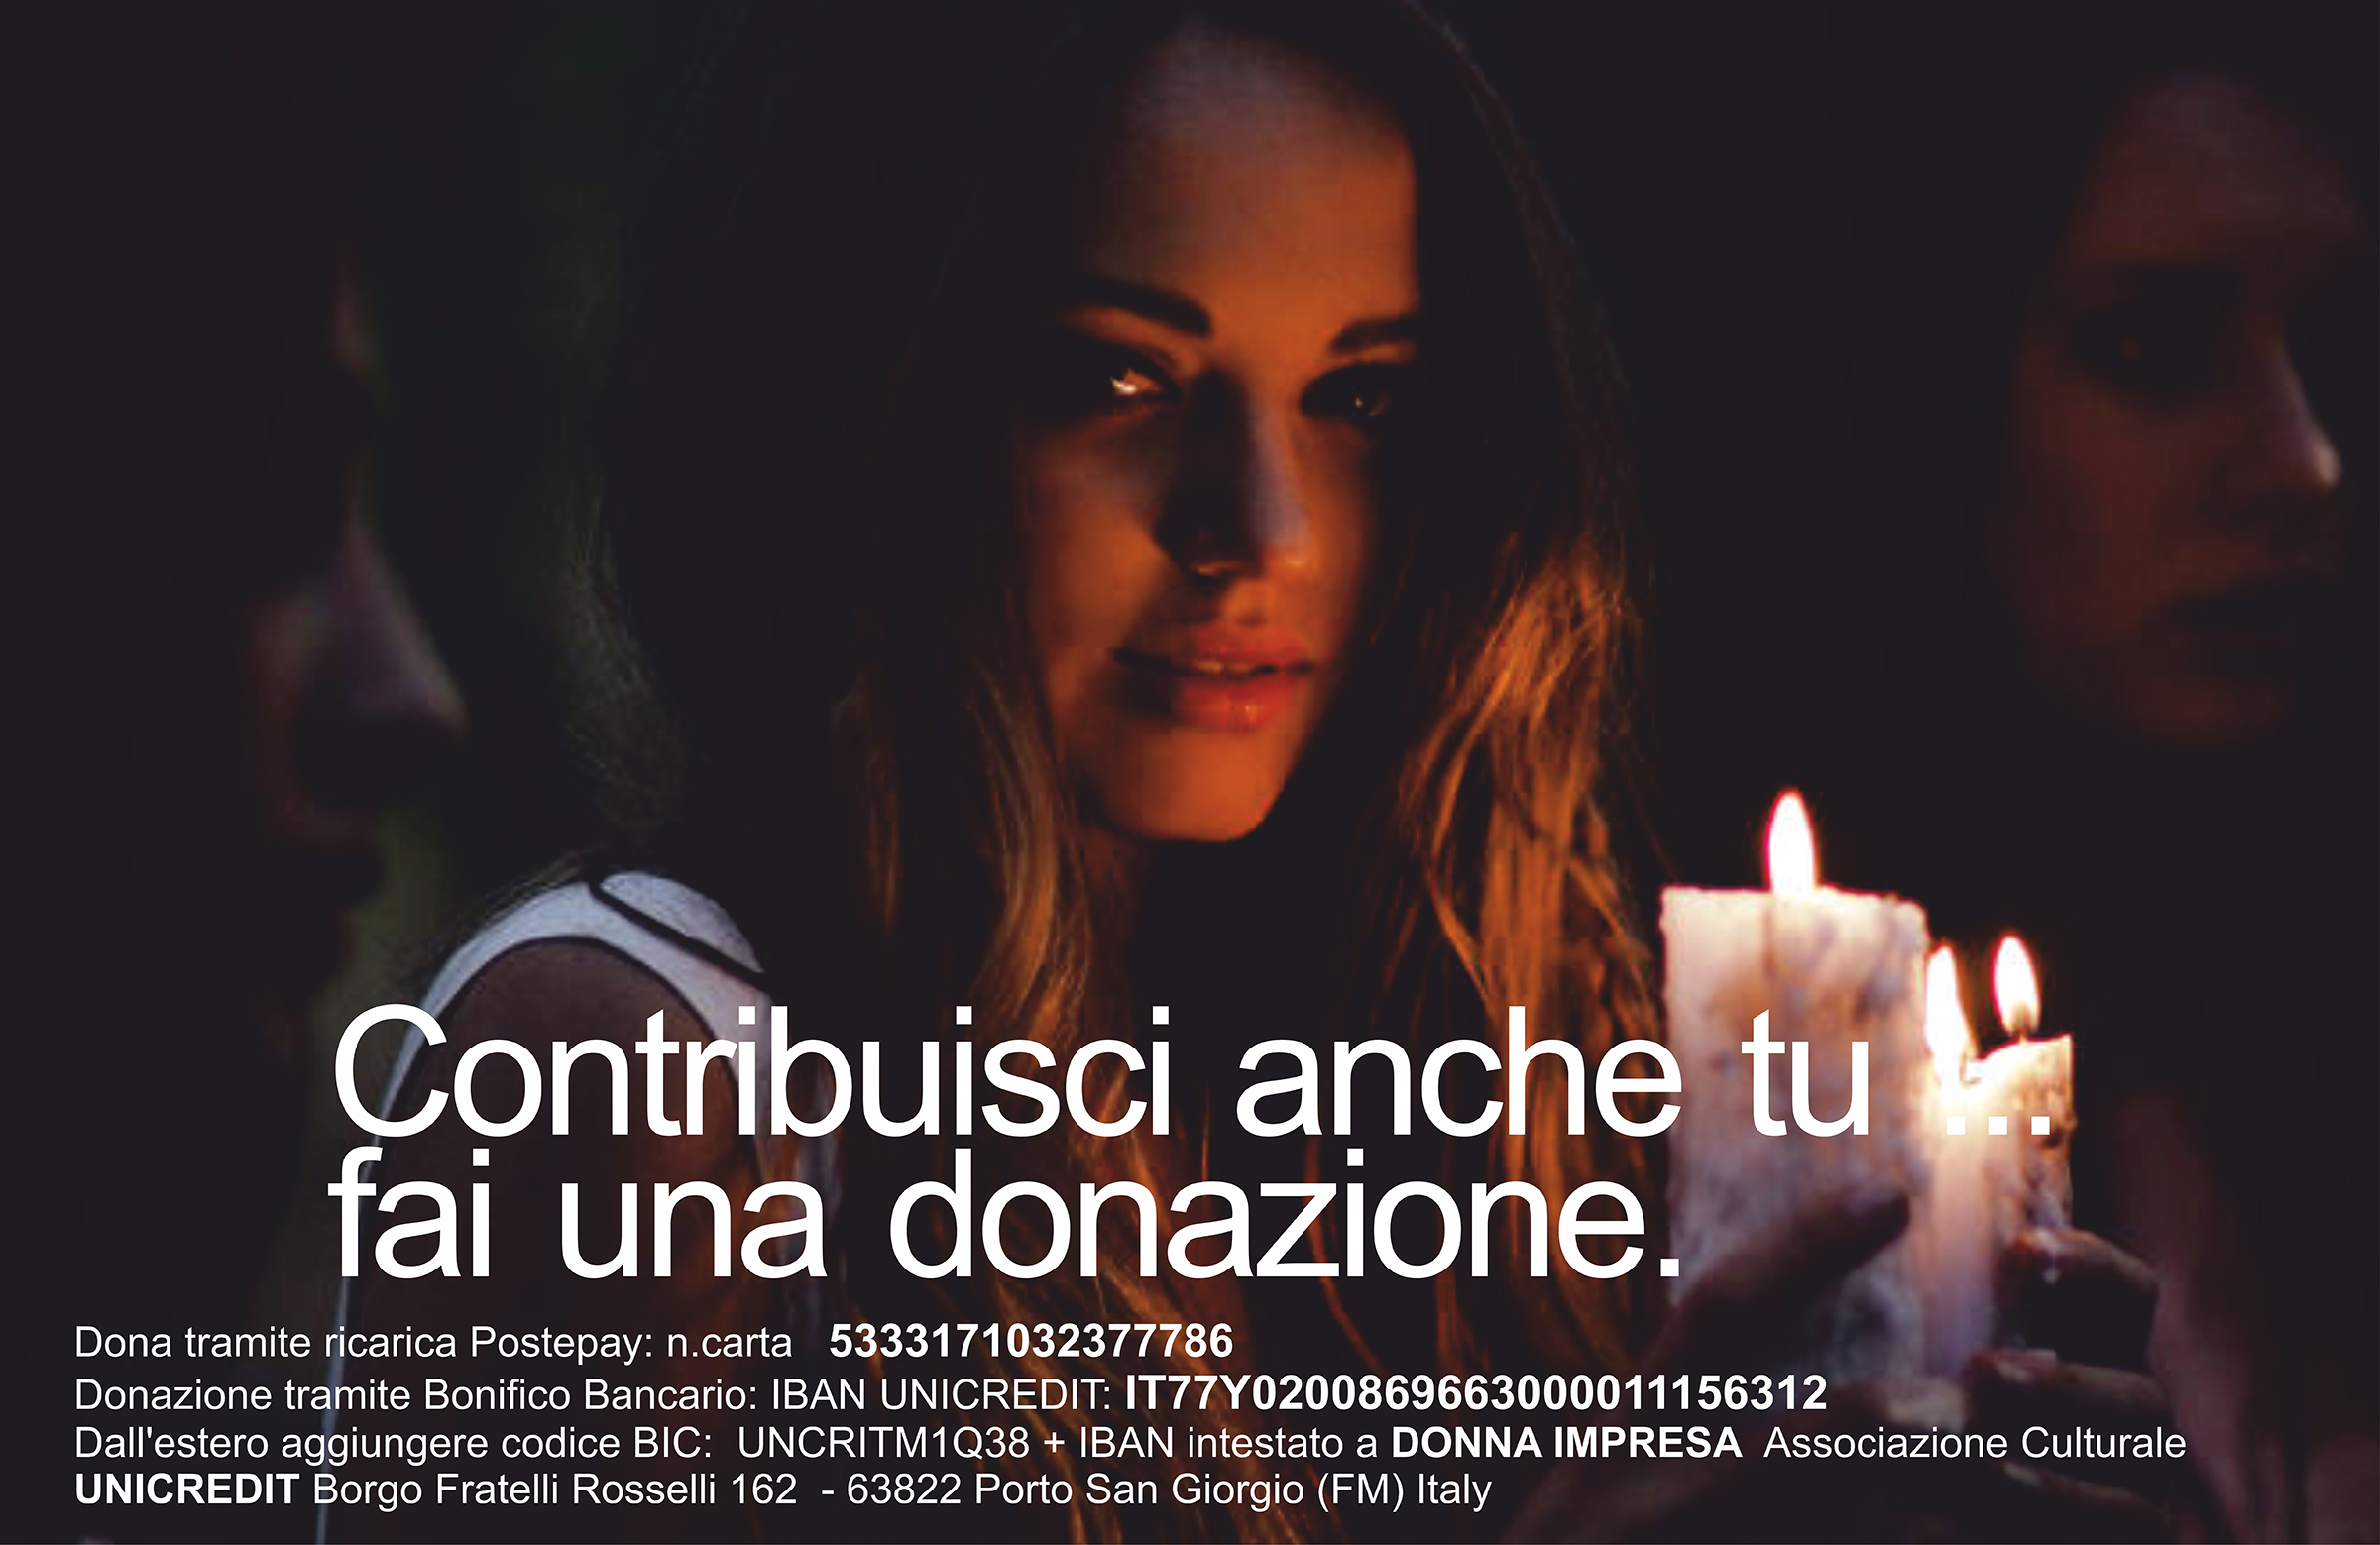 DONATION FOR DONNA